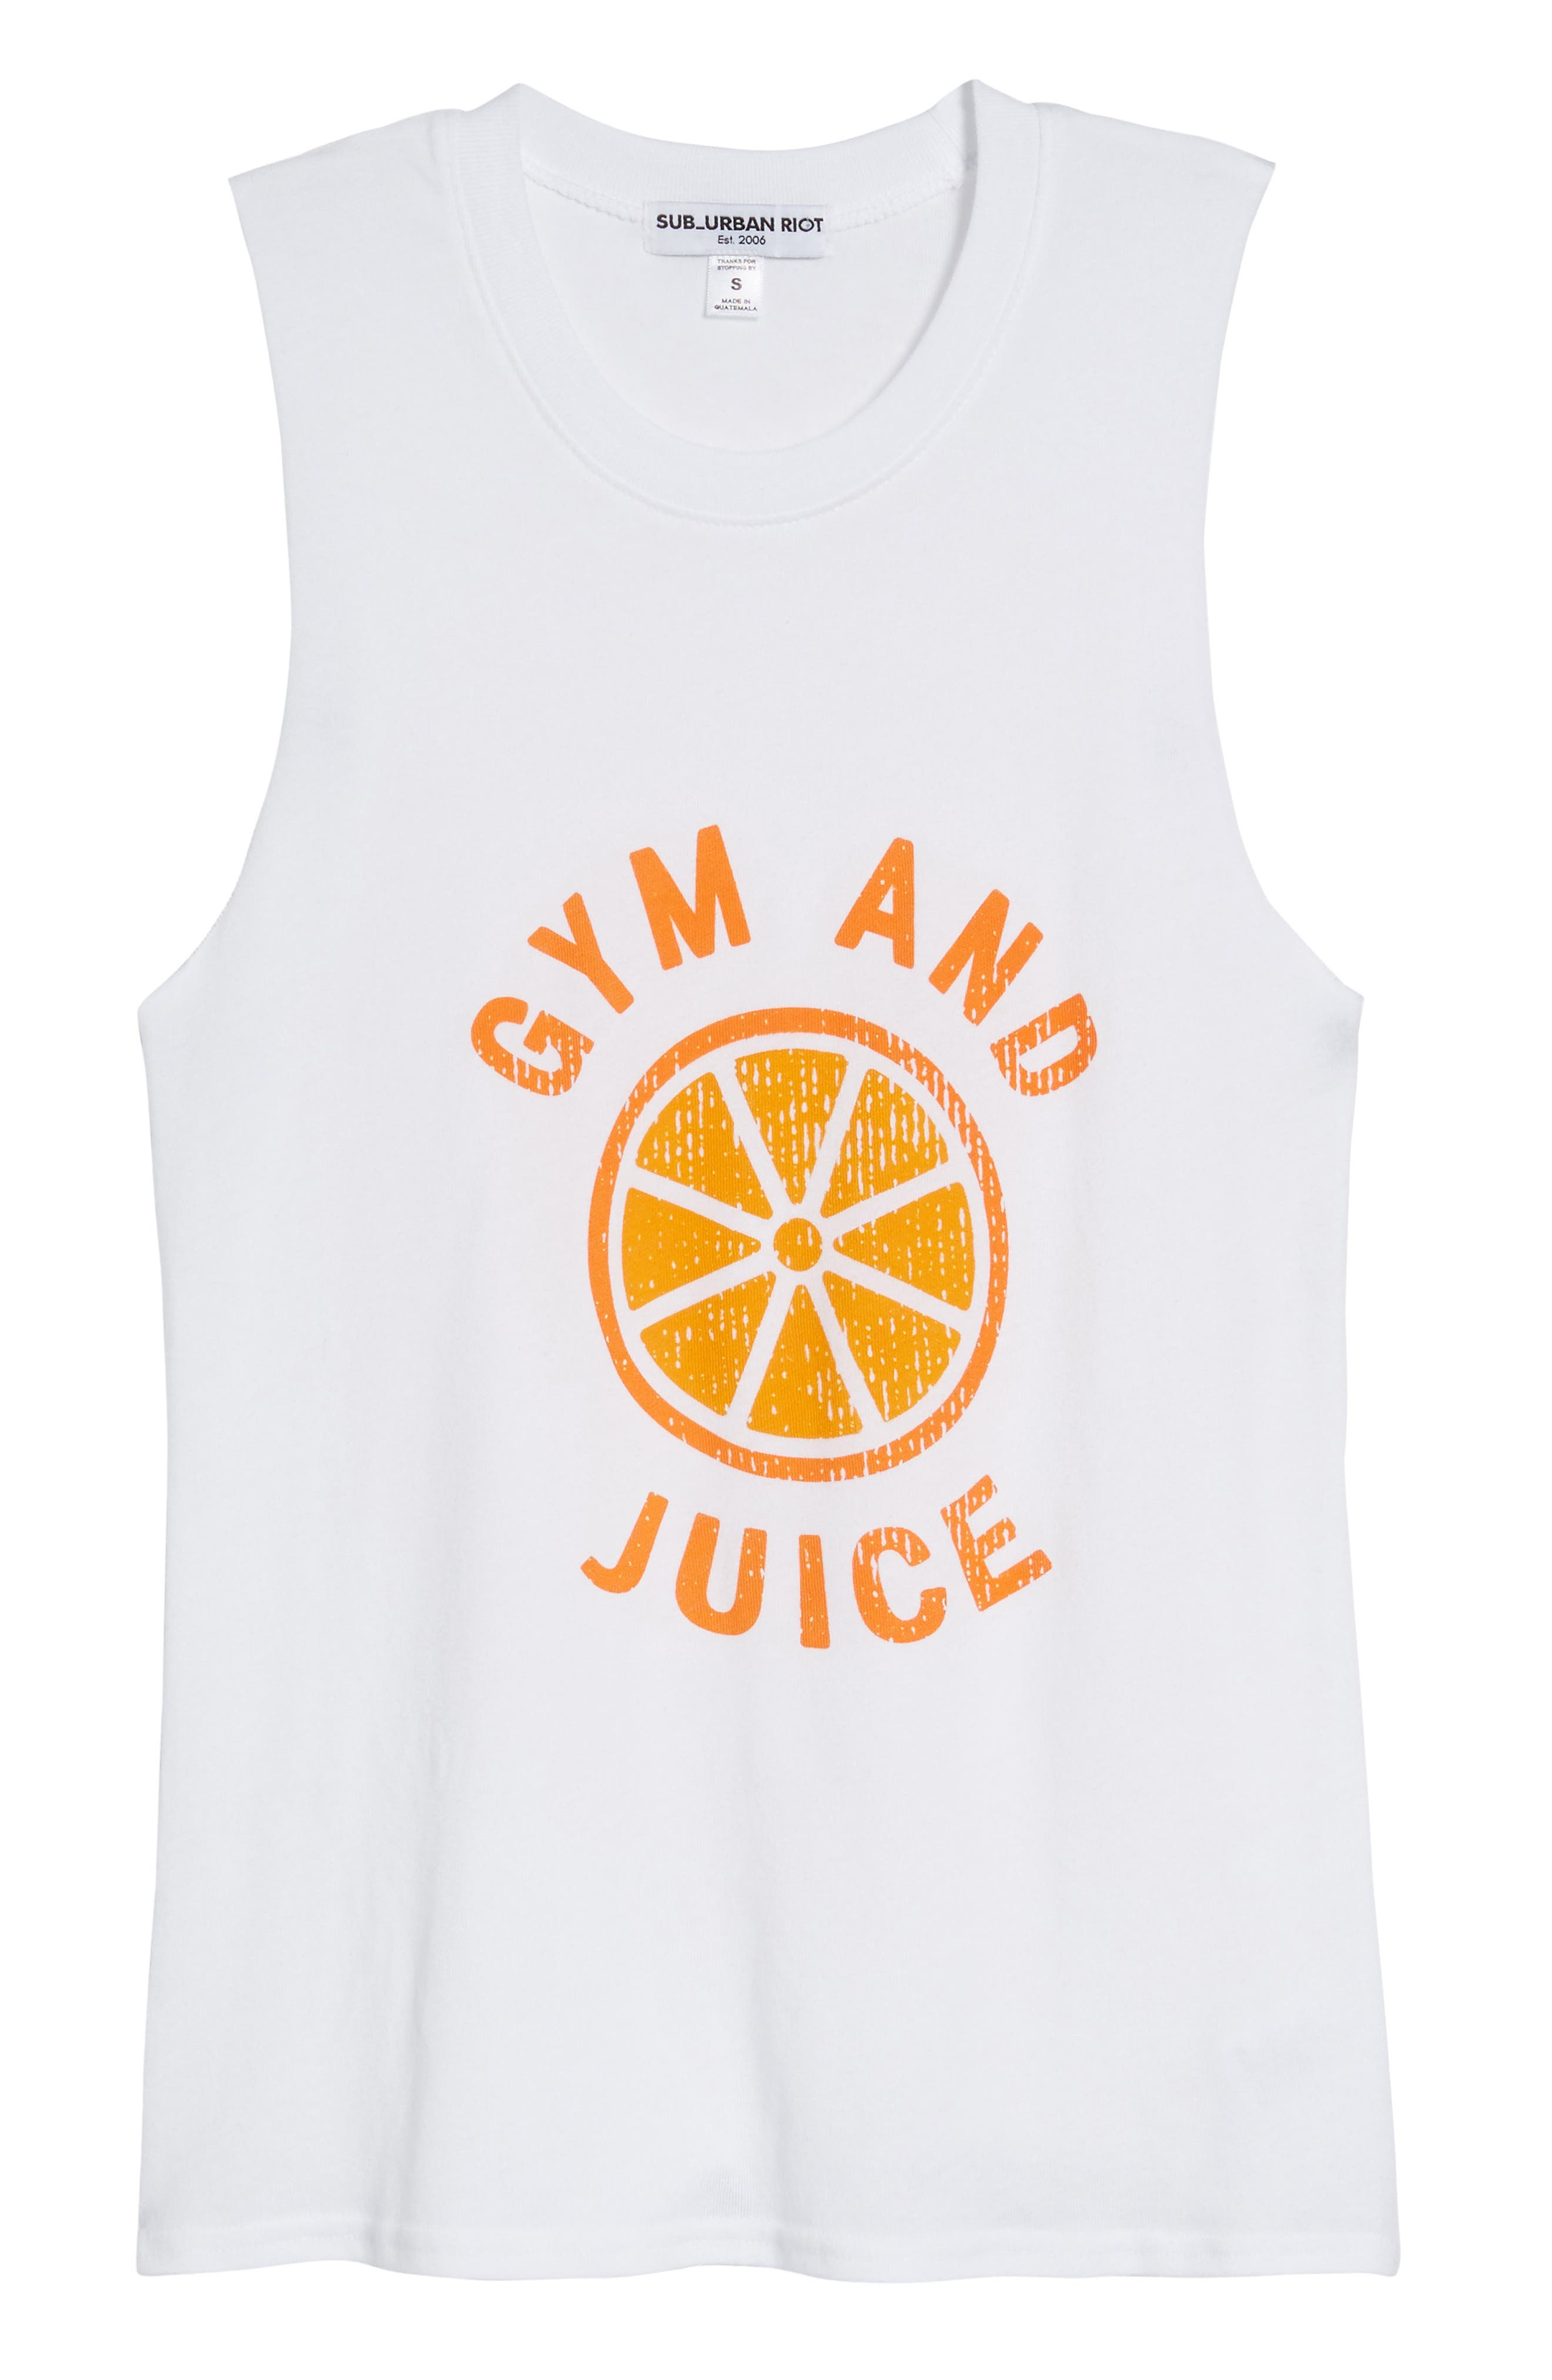 Gym and Juice Muscle Tank Top,                             Alternate thumbnail 7, color,                             White